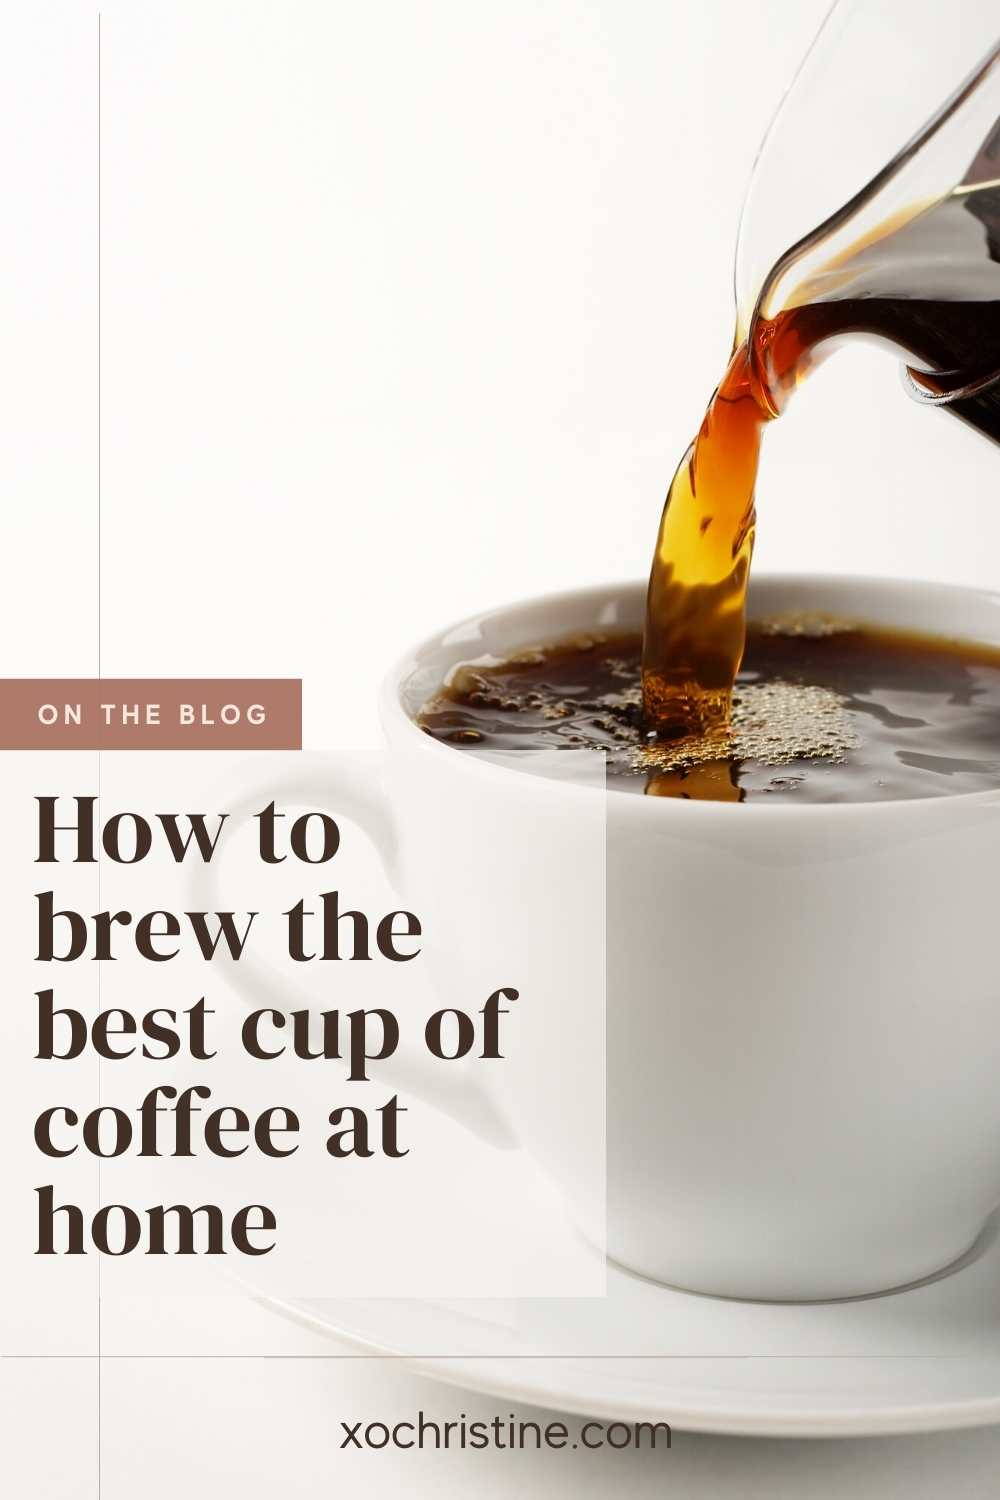 ways to brew  the best cup of Joe at home